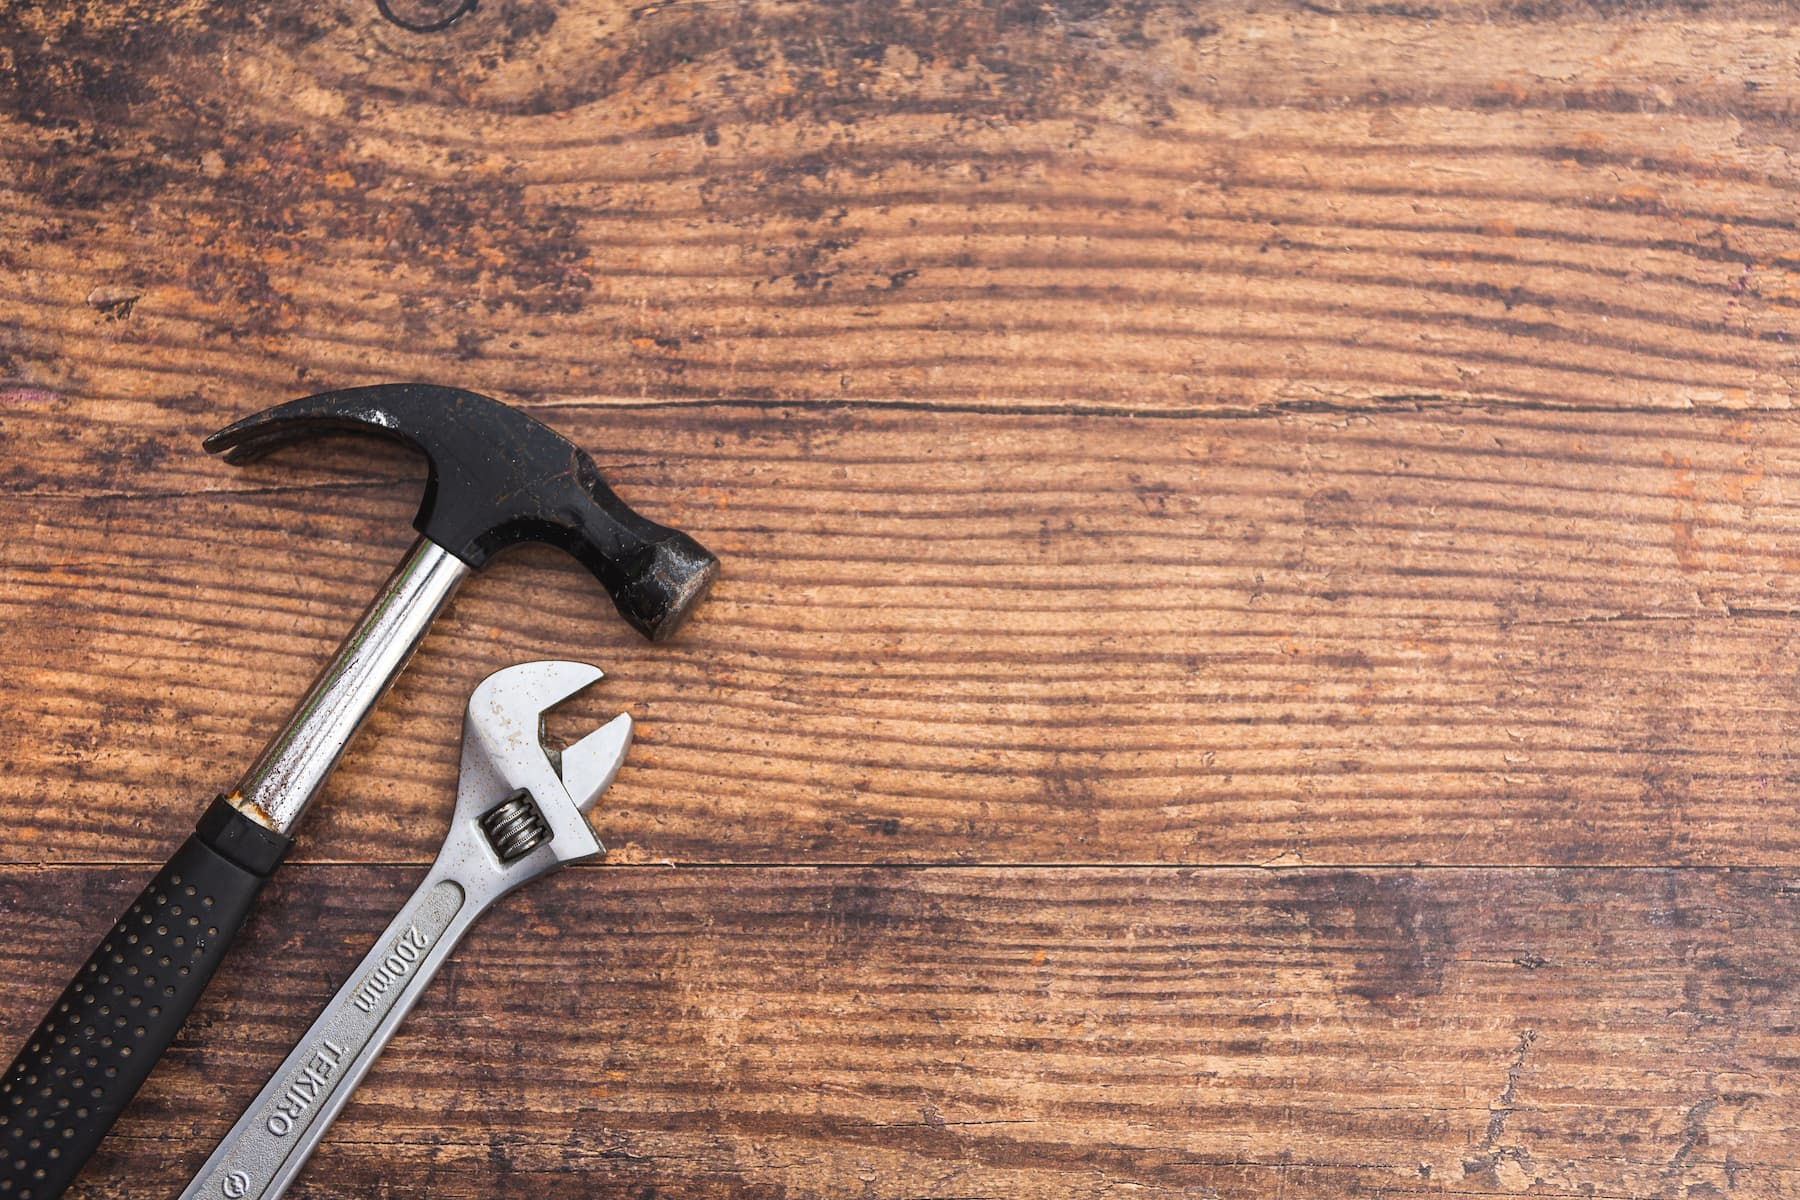 Hammer and wrench on a table